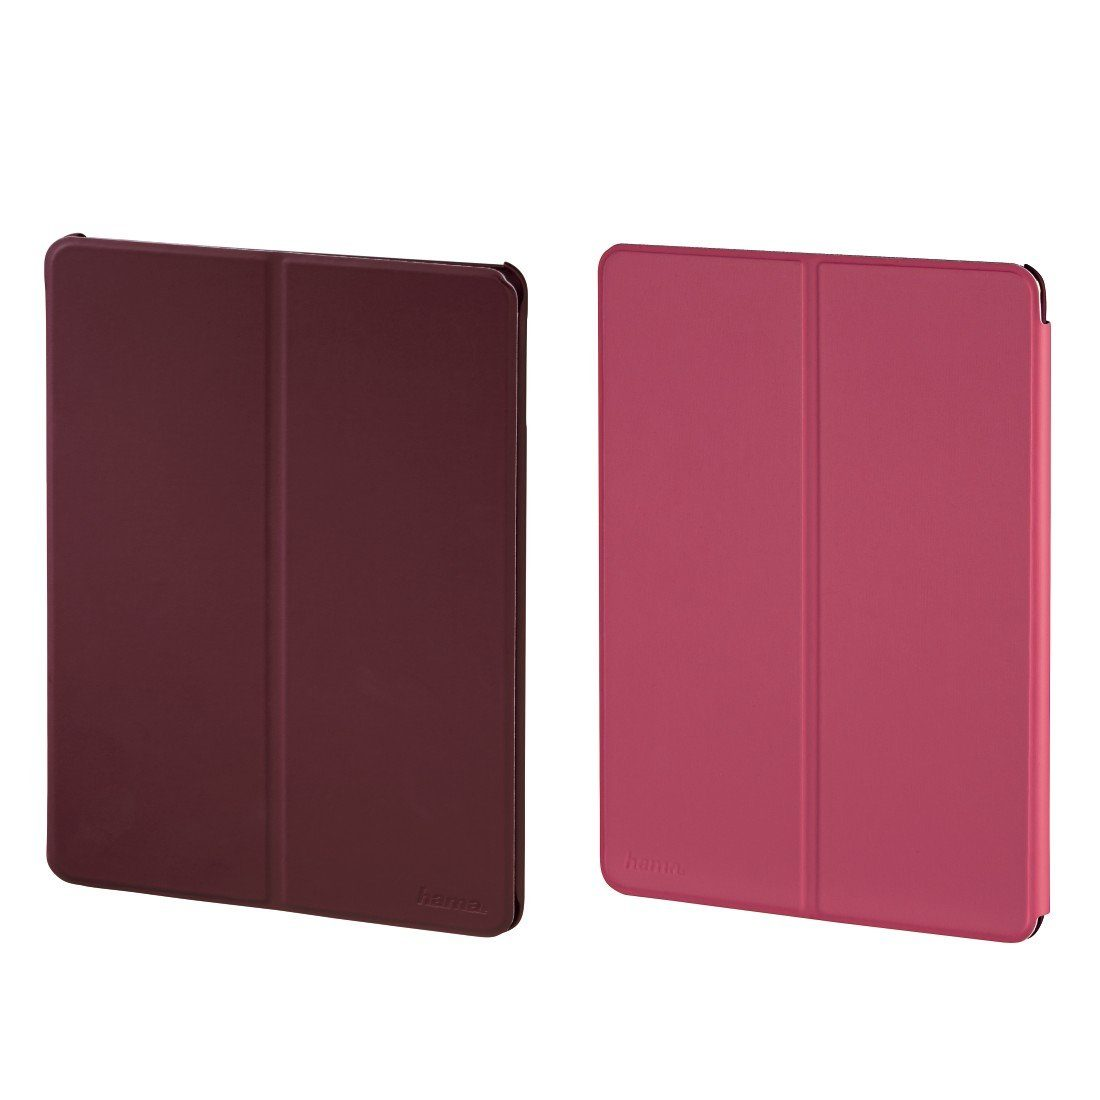 Hama Portfolio Twiddle für Apple iPad Air 2, Lila/Pink